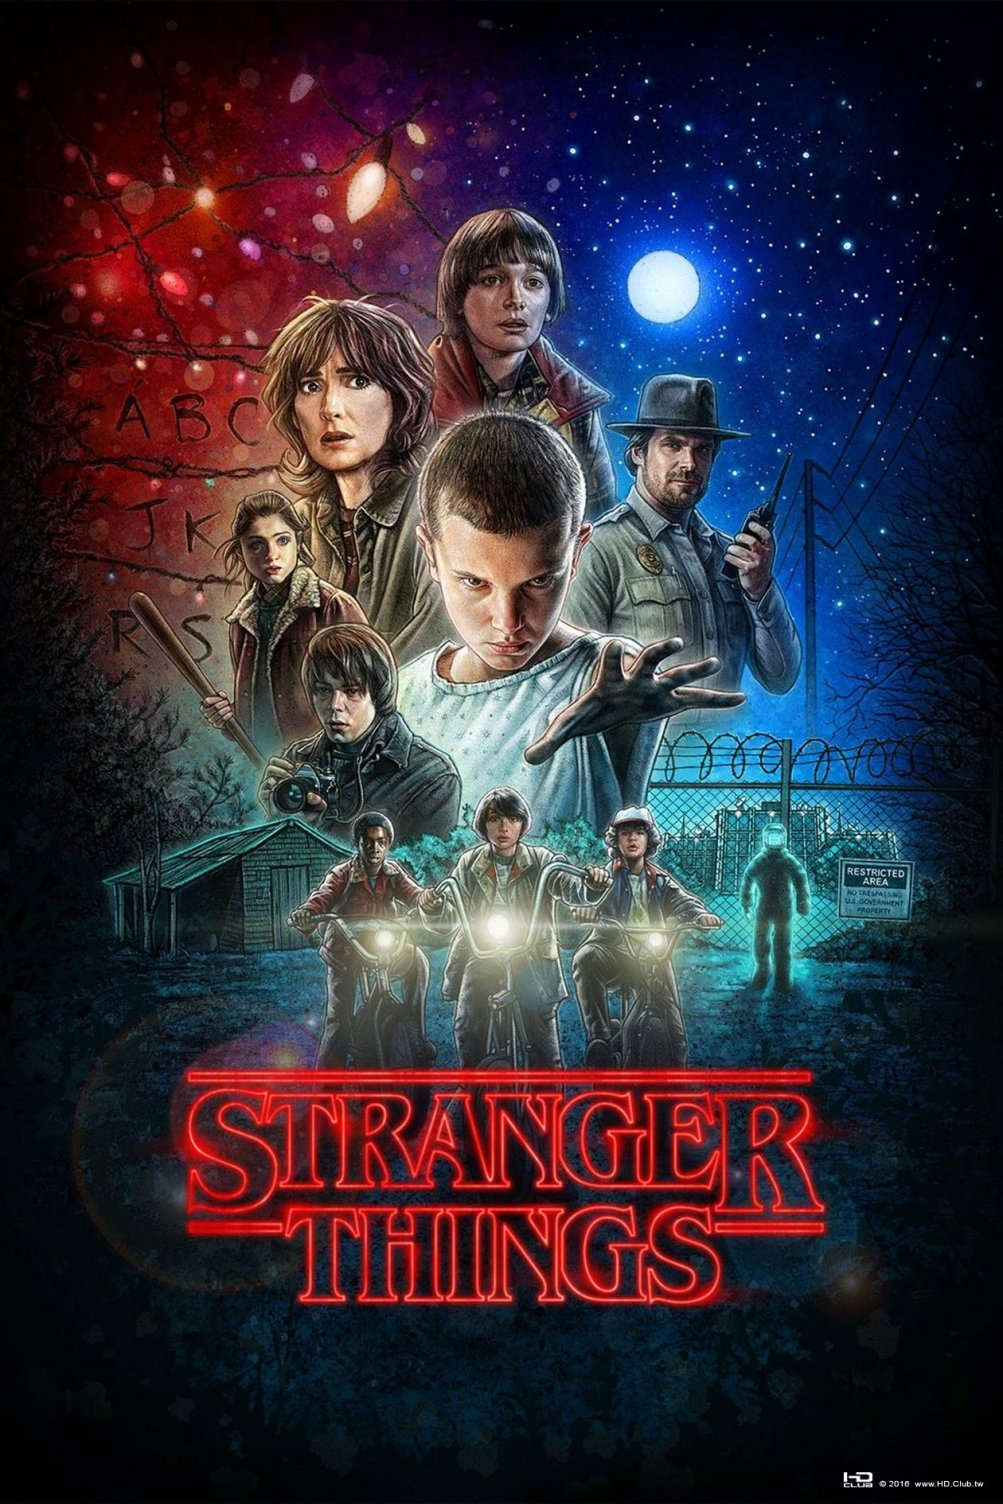 Stranger Things riferimenti Star Wars easter egg